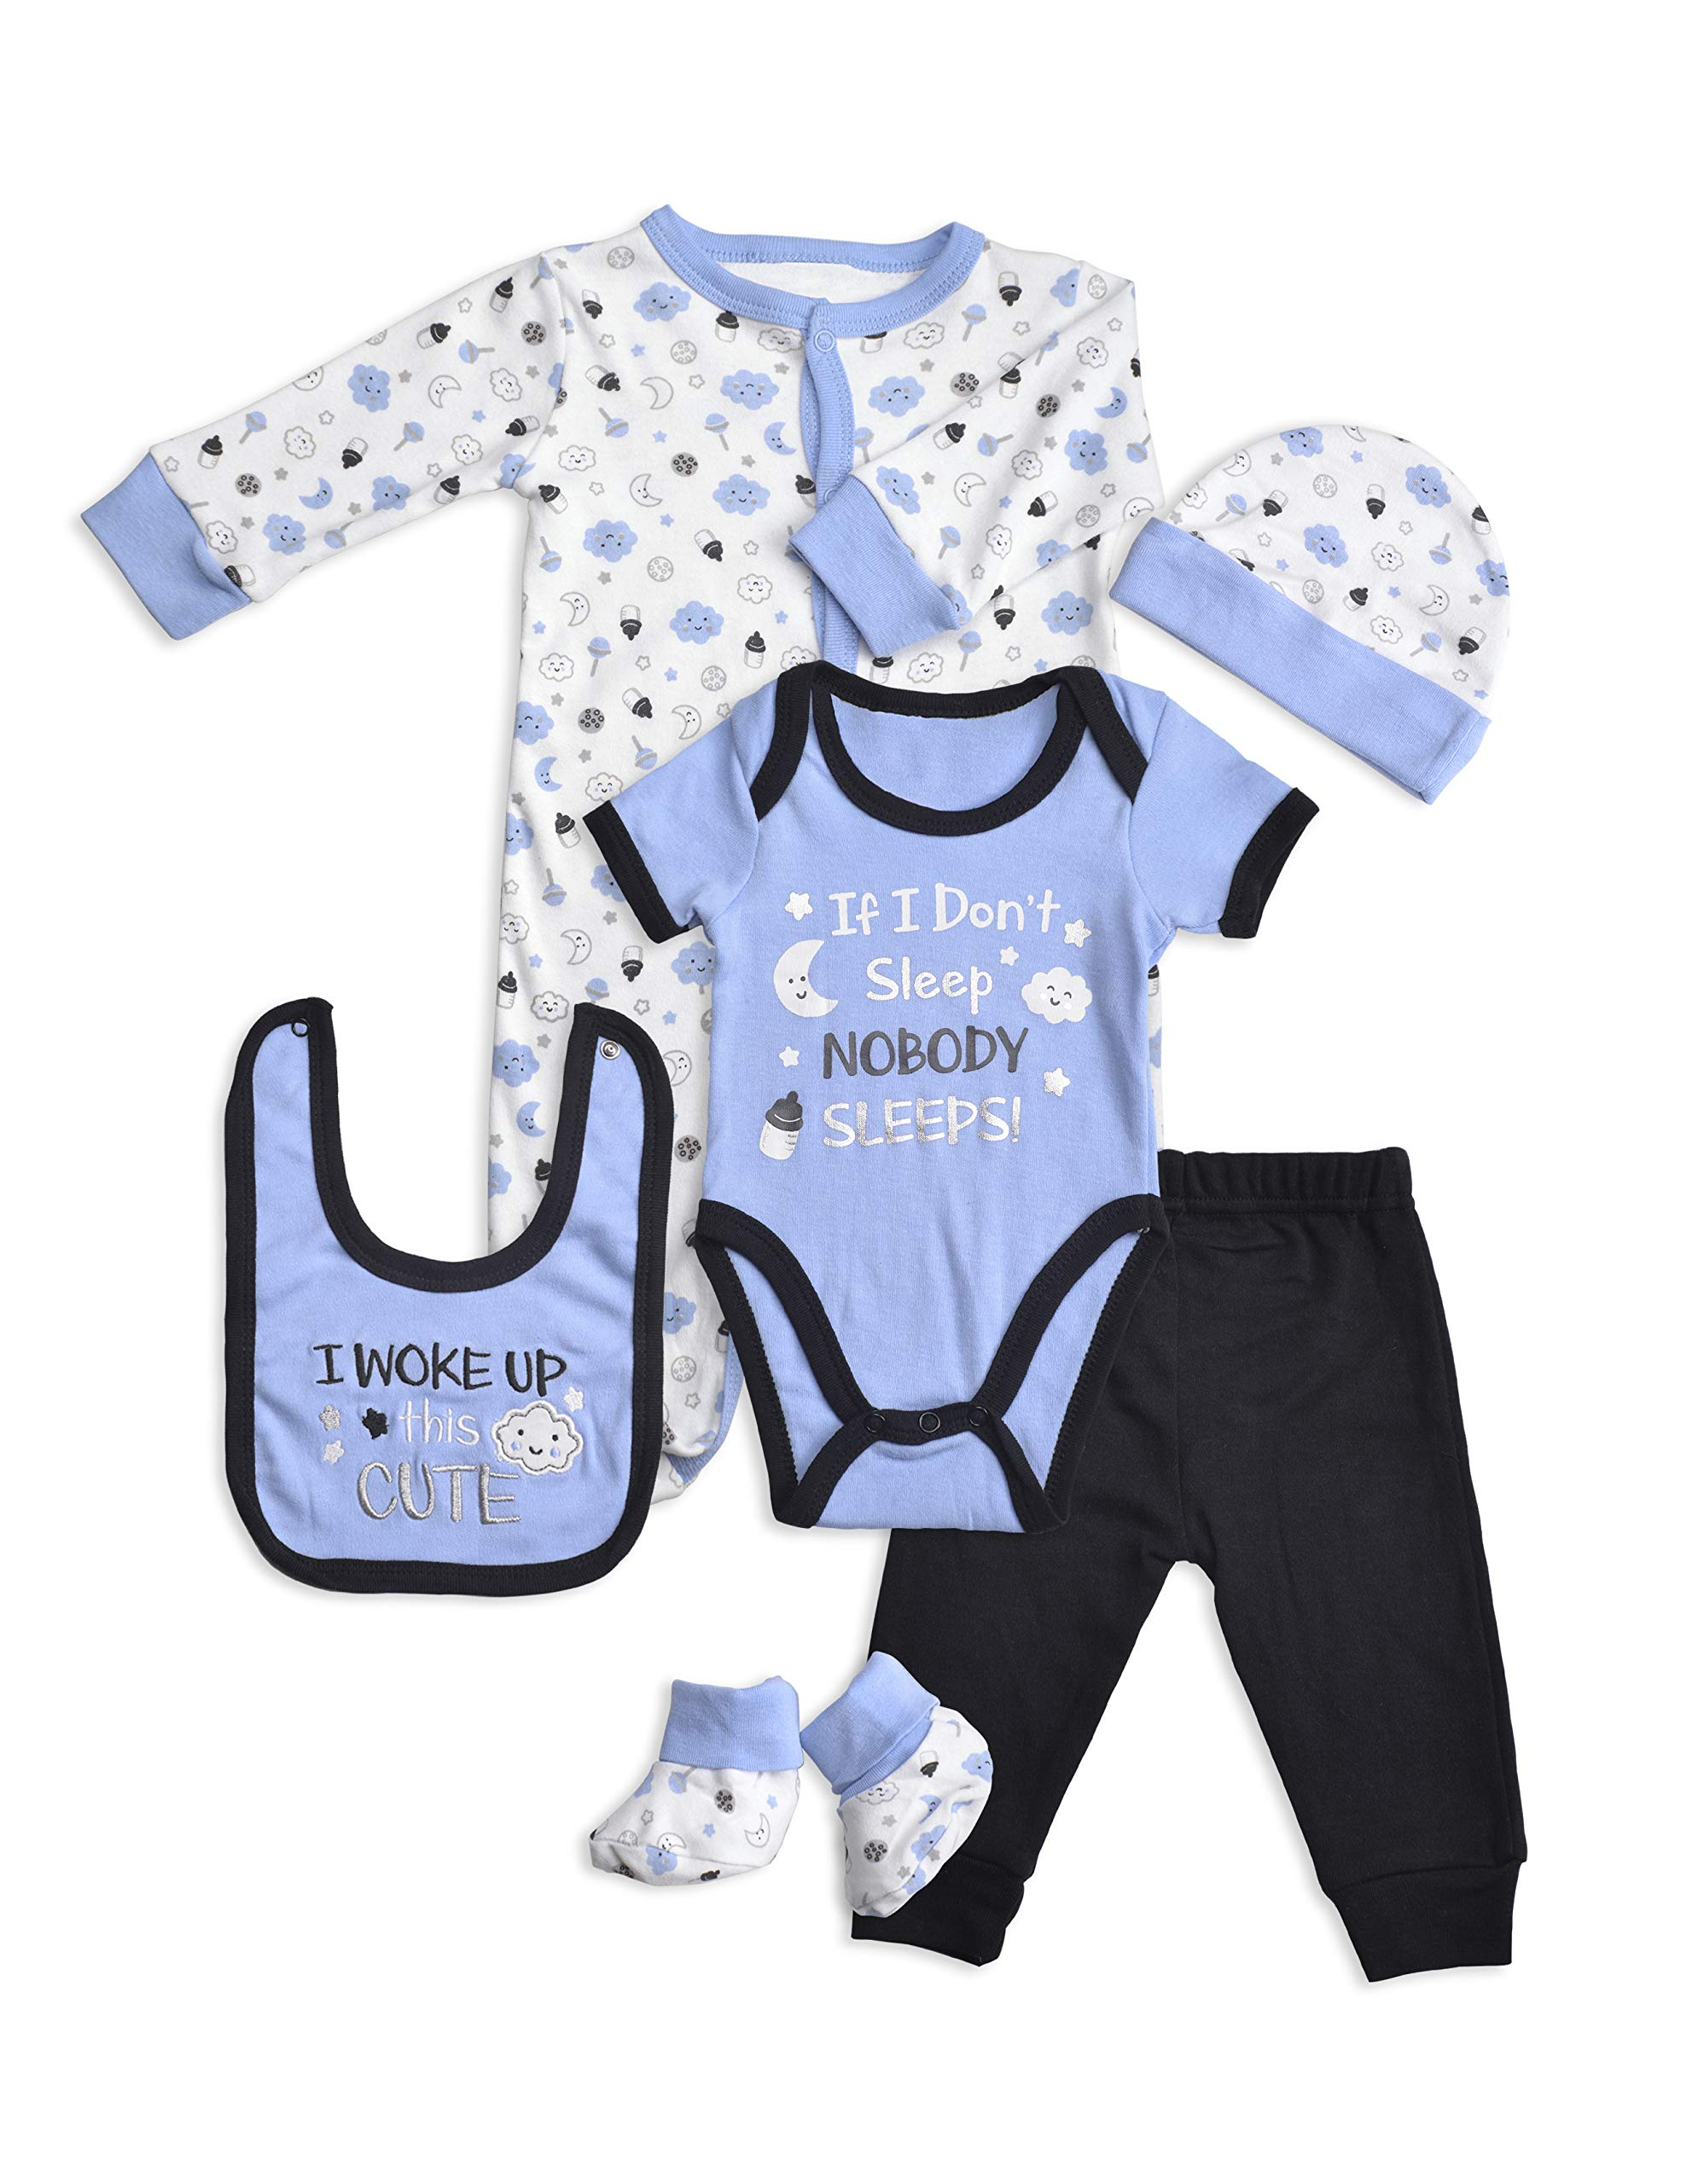 Layette Set, 6 Piece Baby Essentials for Newborn Unisex Gift Boys and Girls by Lily and Page